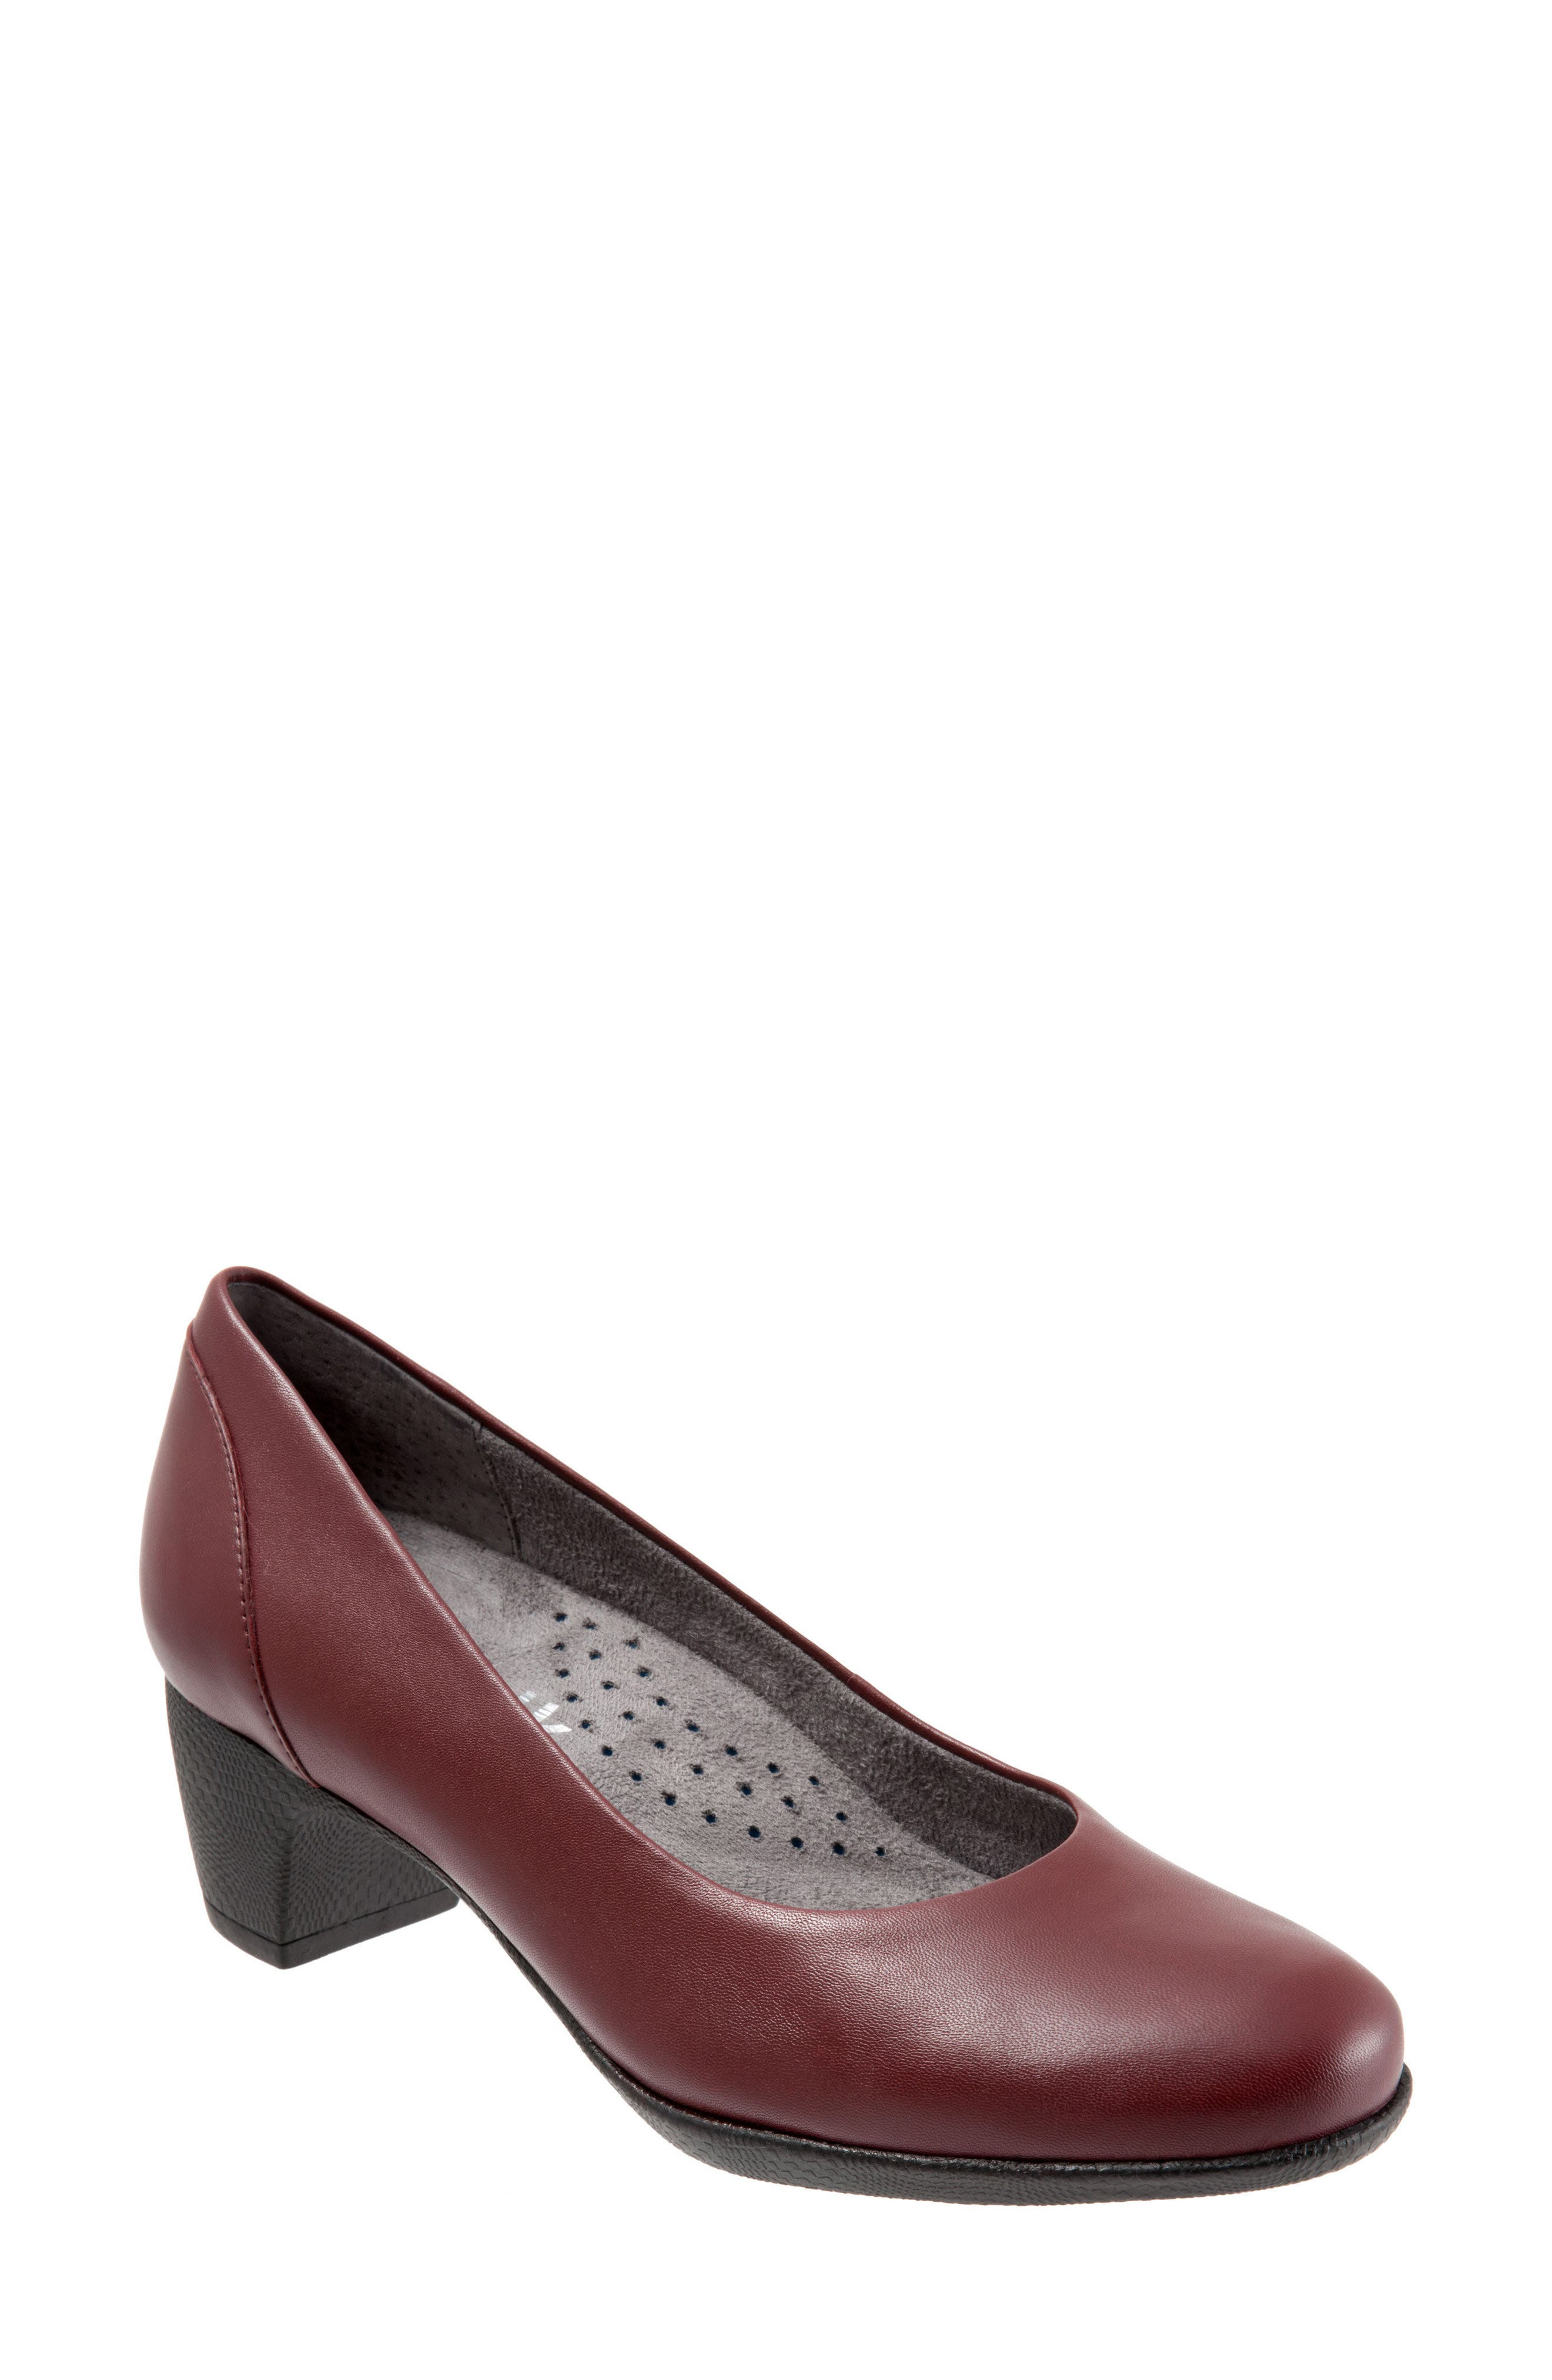 Imperial II Pump,                             Main thumbnail 1, color,                             Dark Red Leather